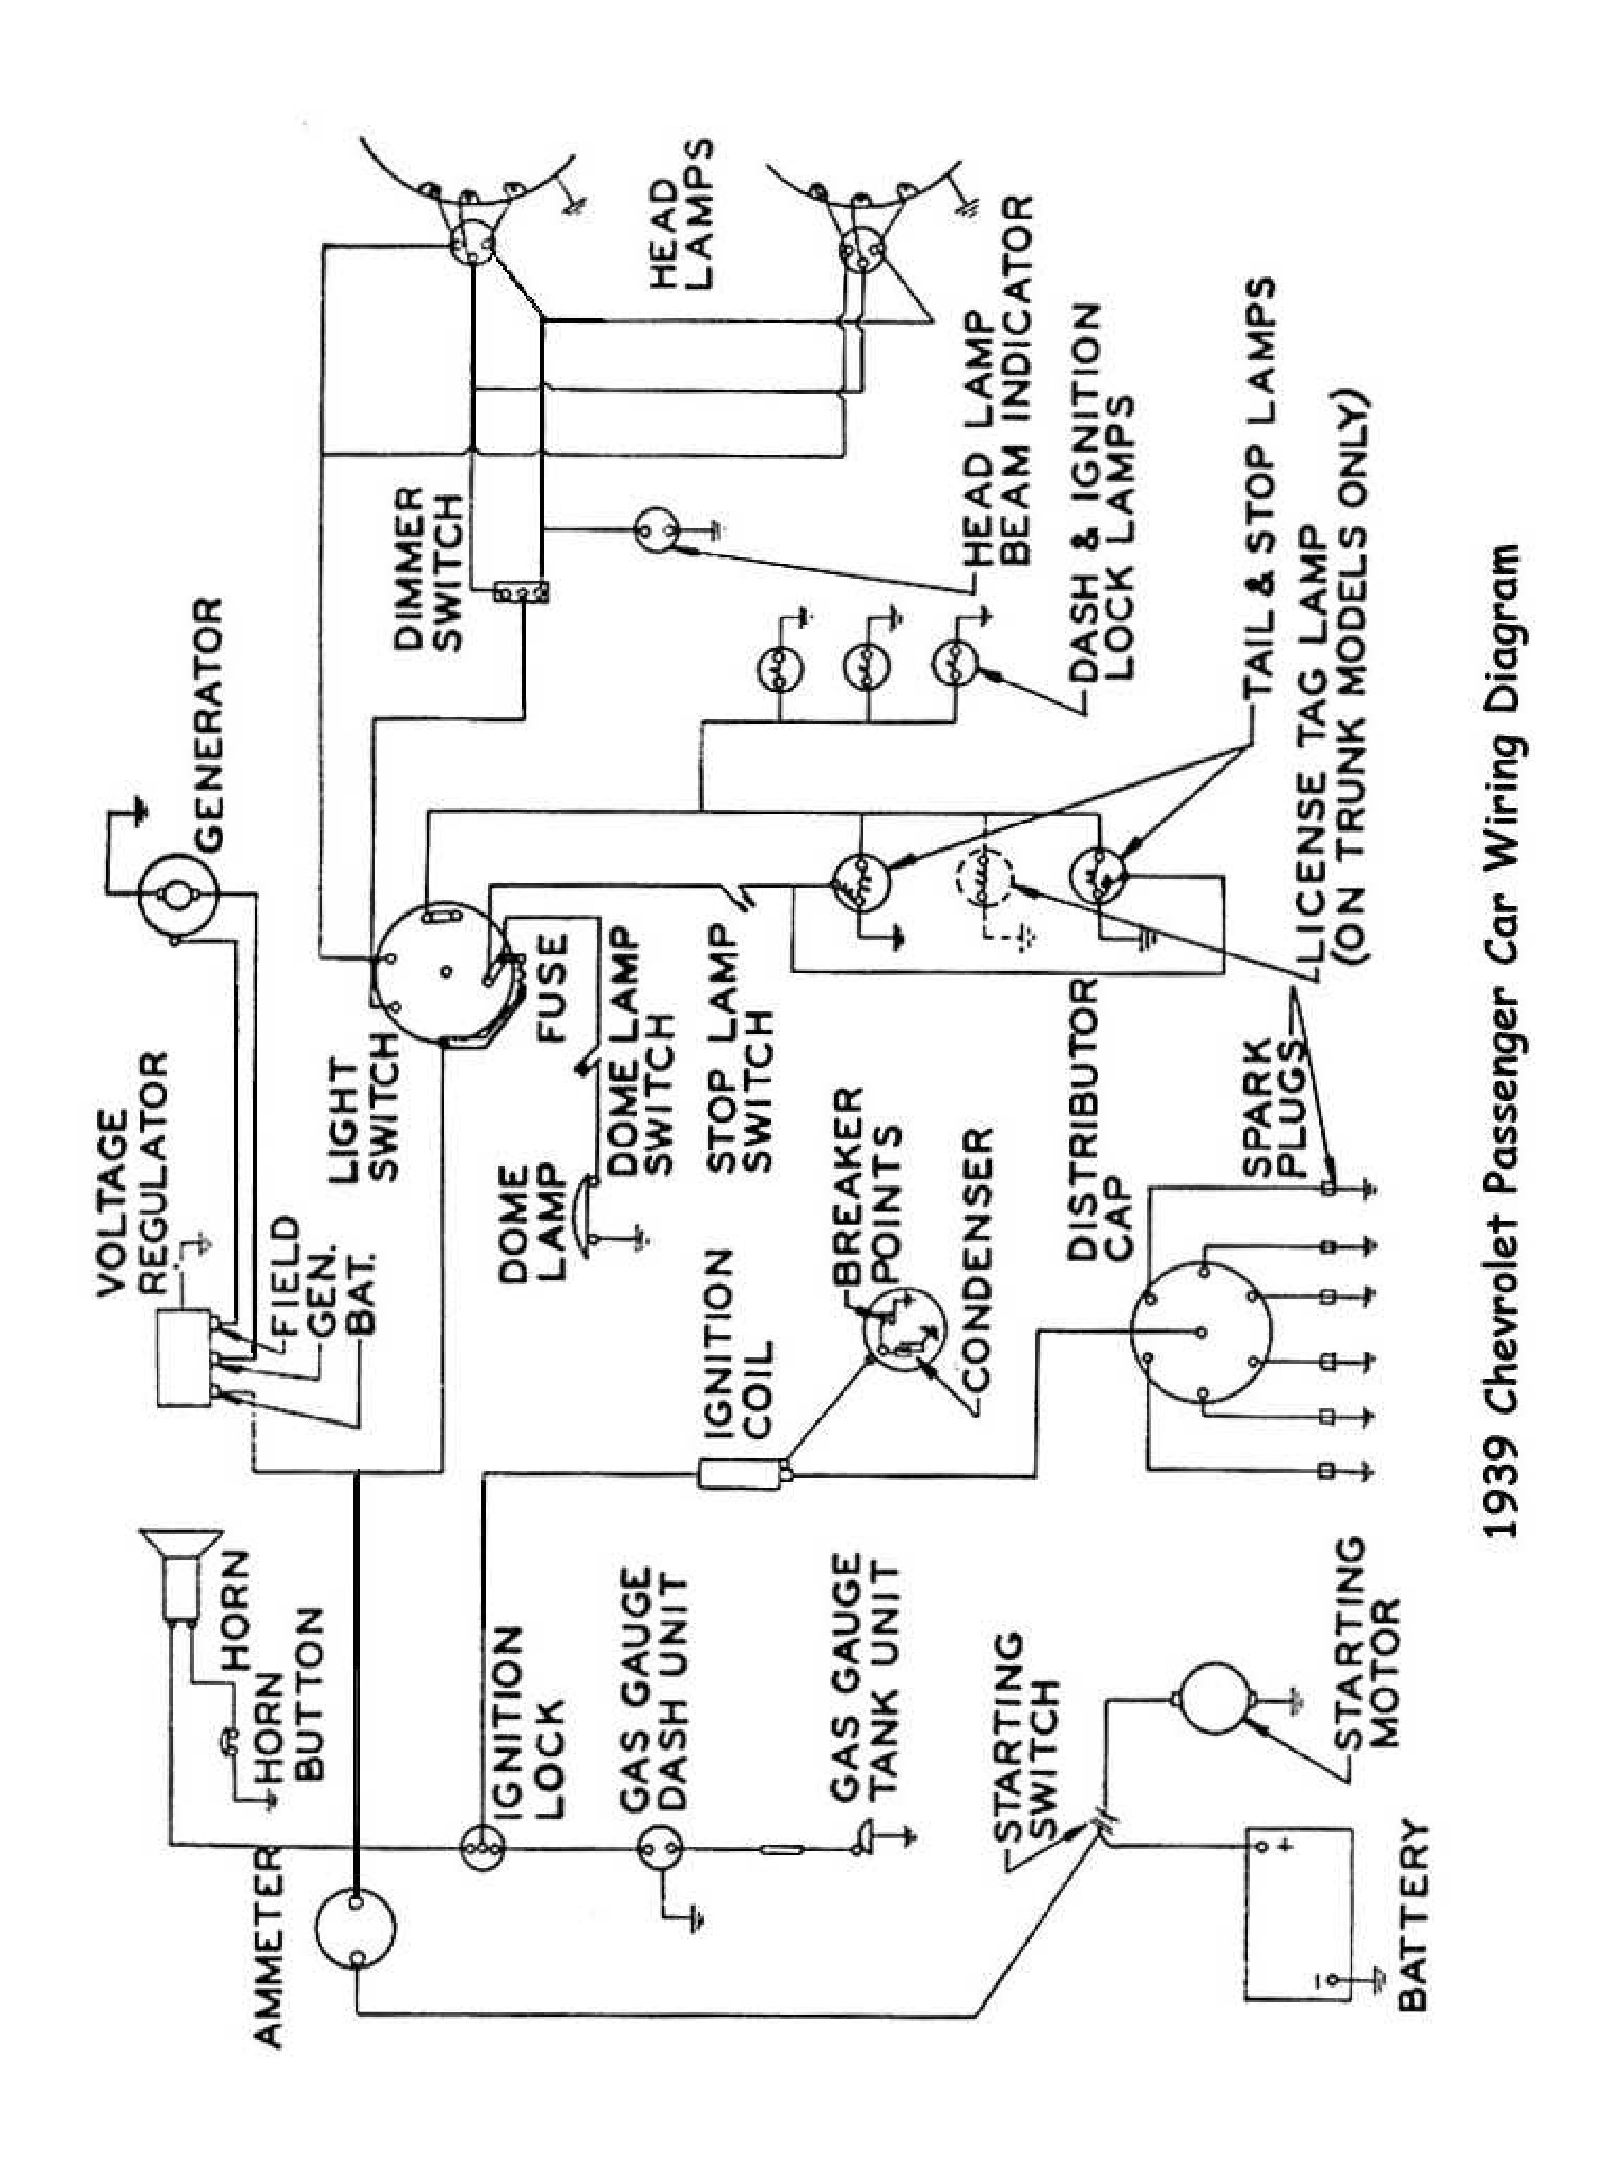 39car simple chevy wiring diagram chevy truck wiring \u2022 wiring diagrams 1946 ford truck wiring diagram at gsmx.co